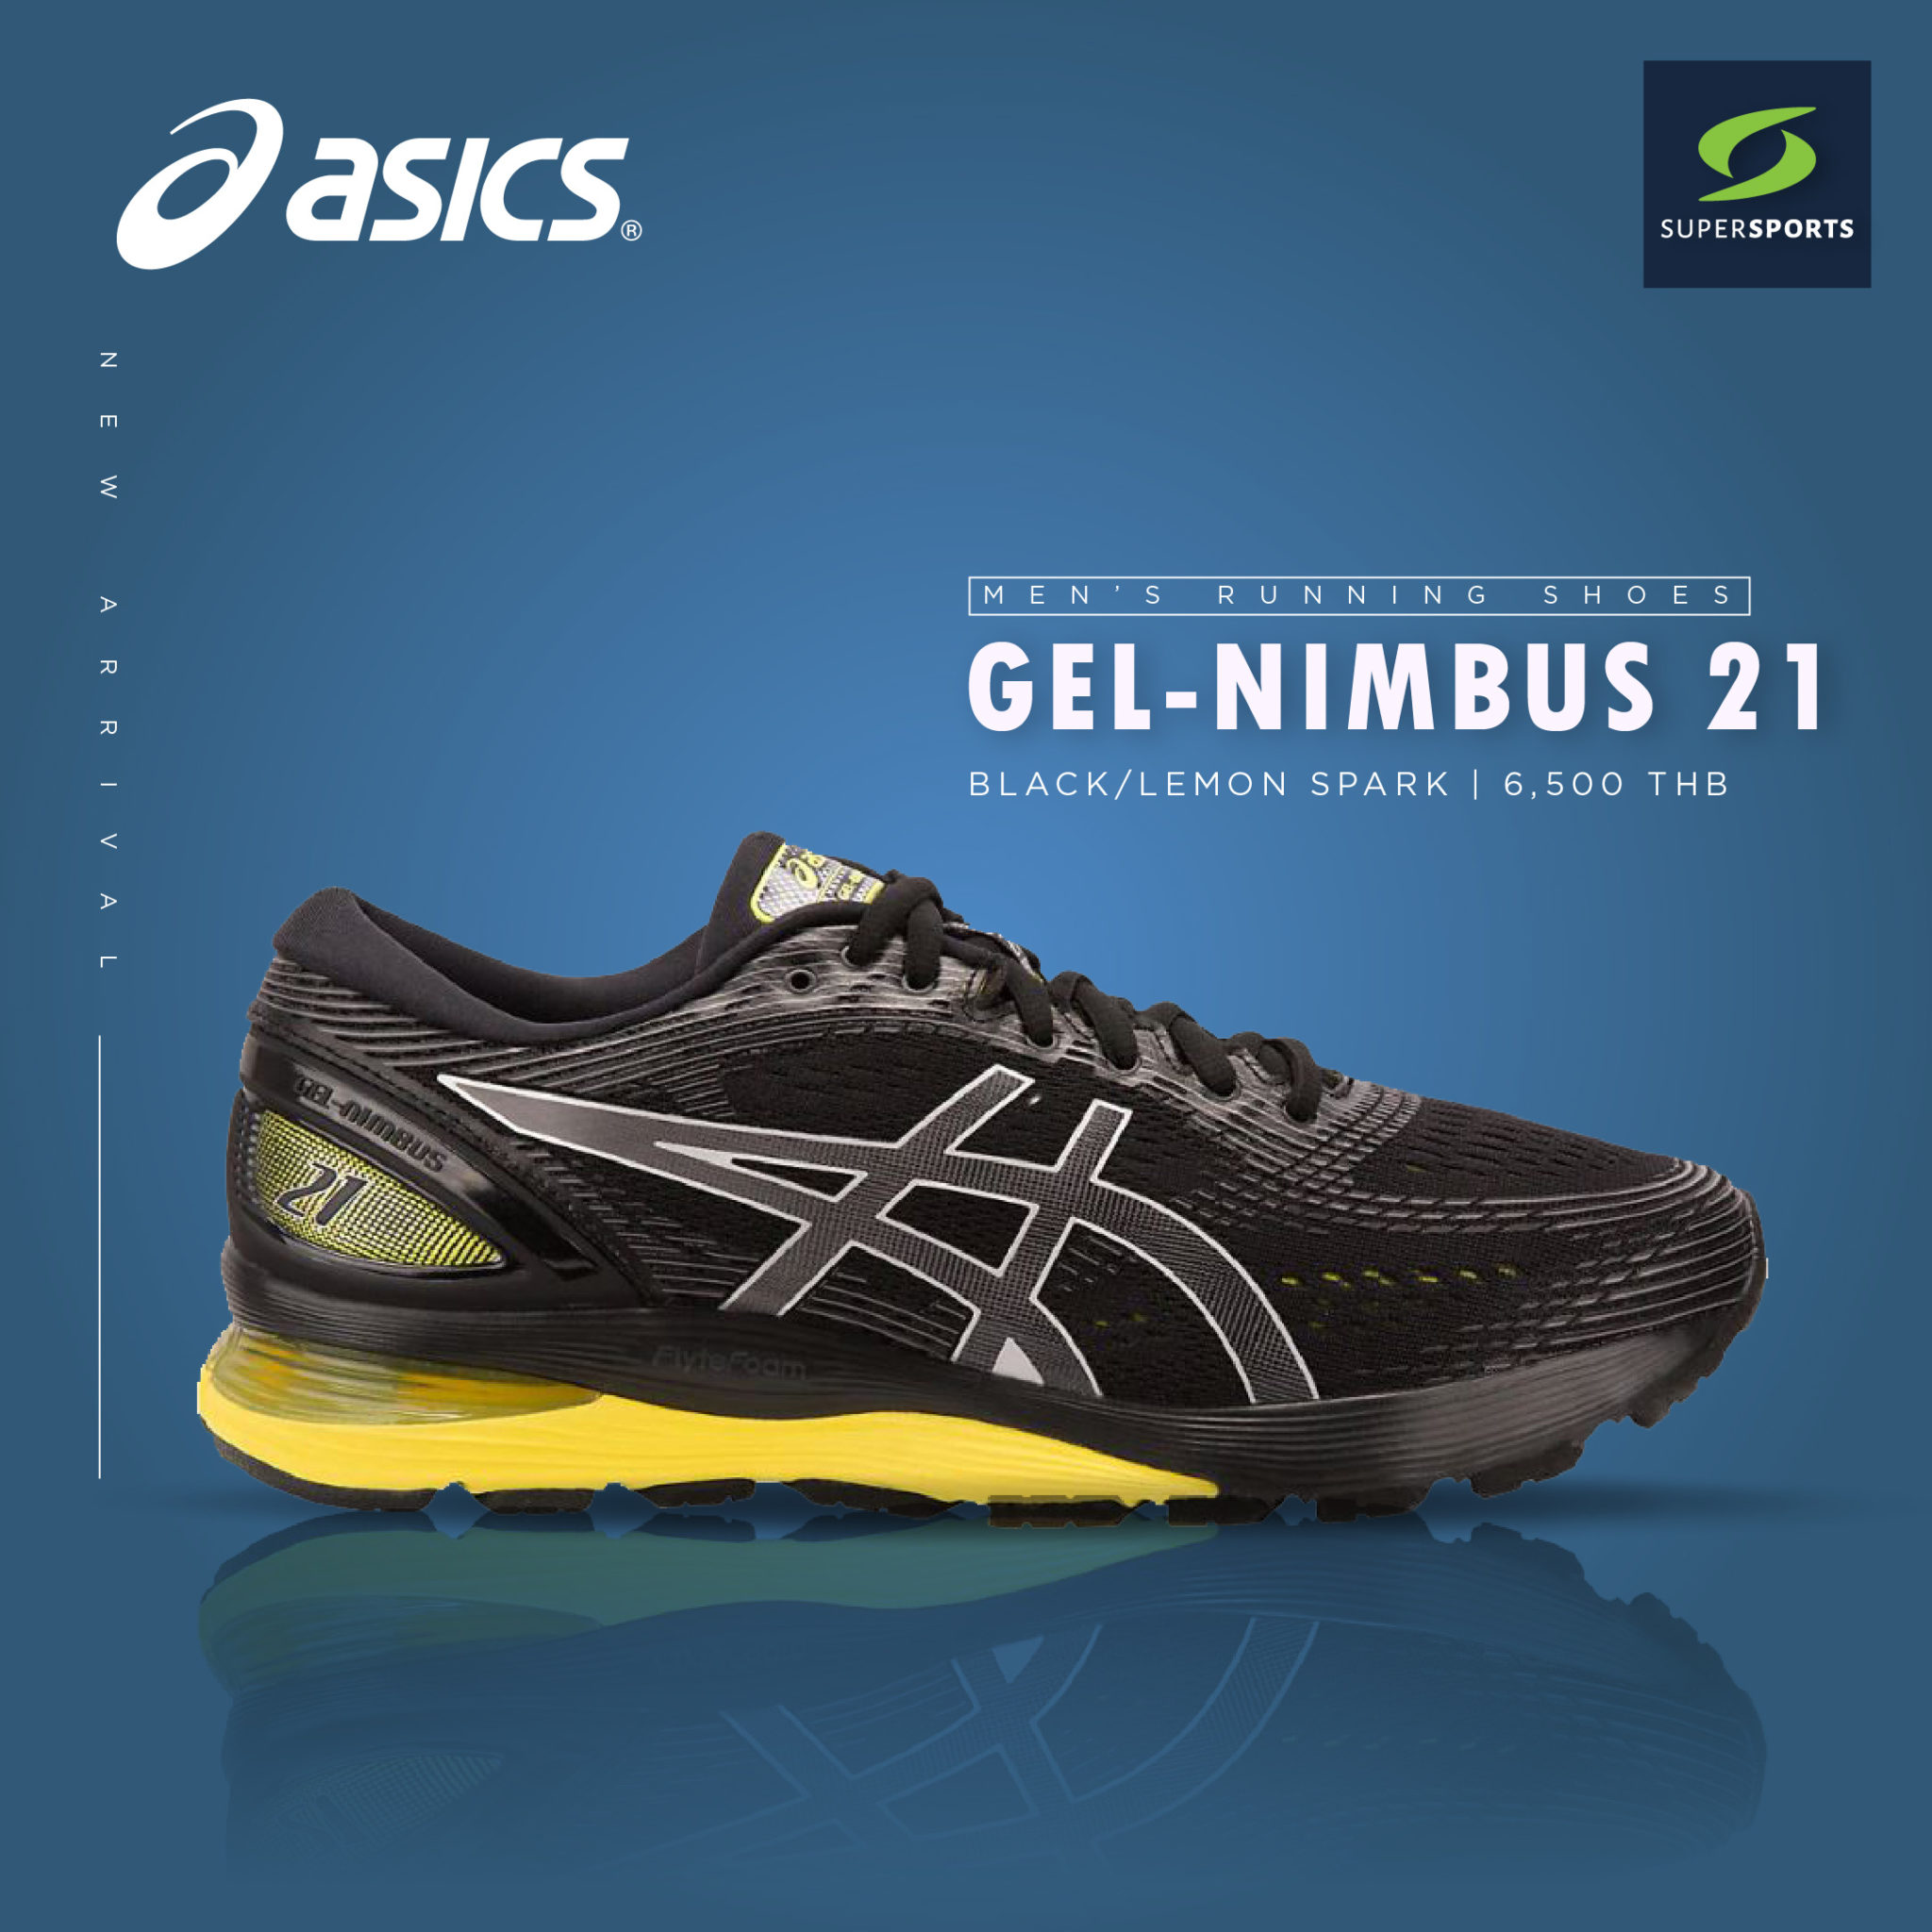 b3139a299db8a ASICS GEL-NIMBUS 21 at SUPERSPORTS - DISTANCE RUNNING. MADE ...